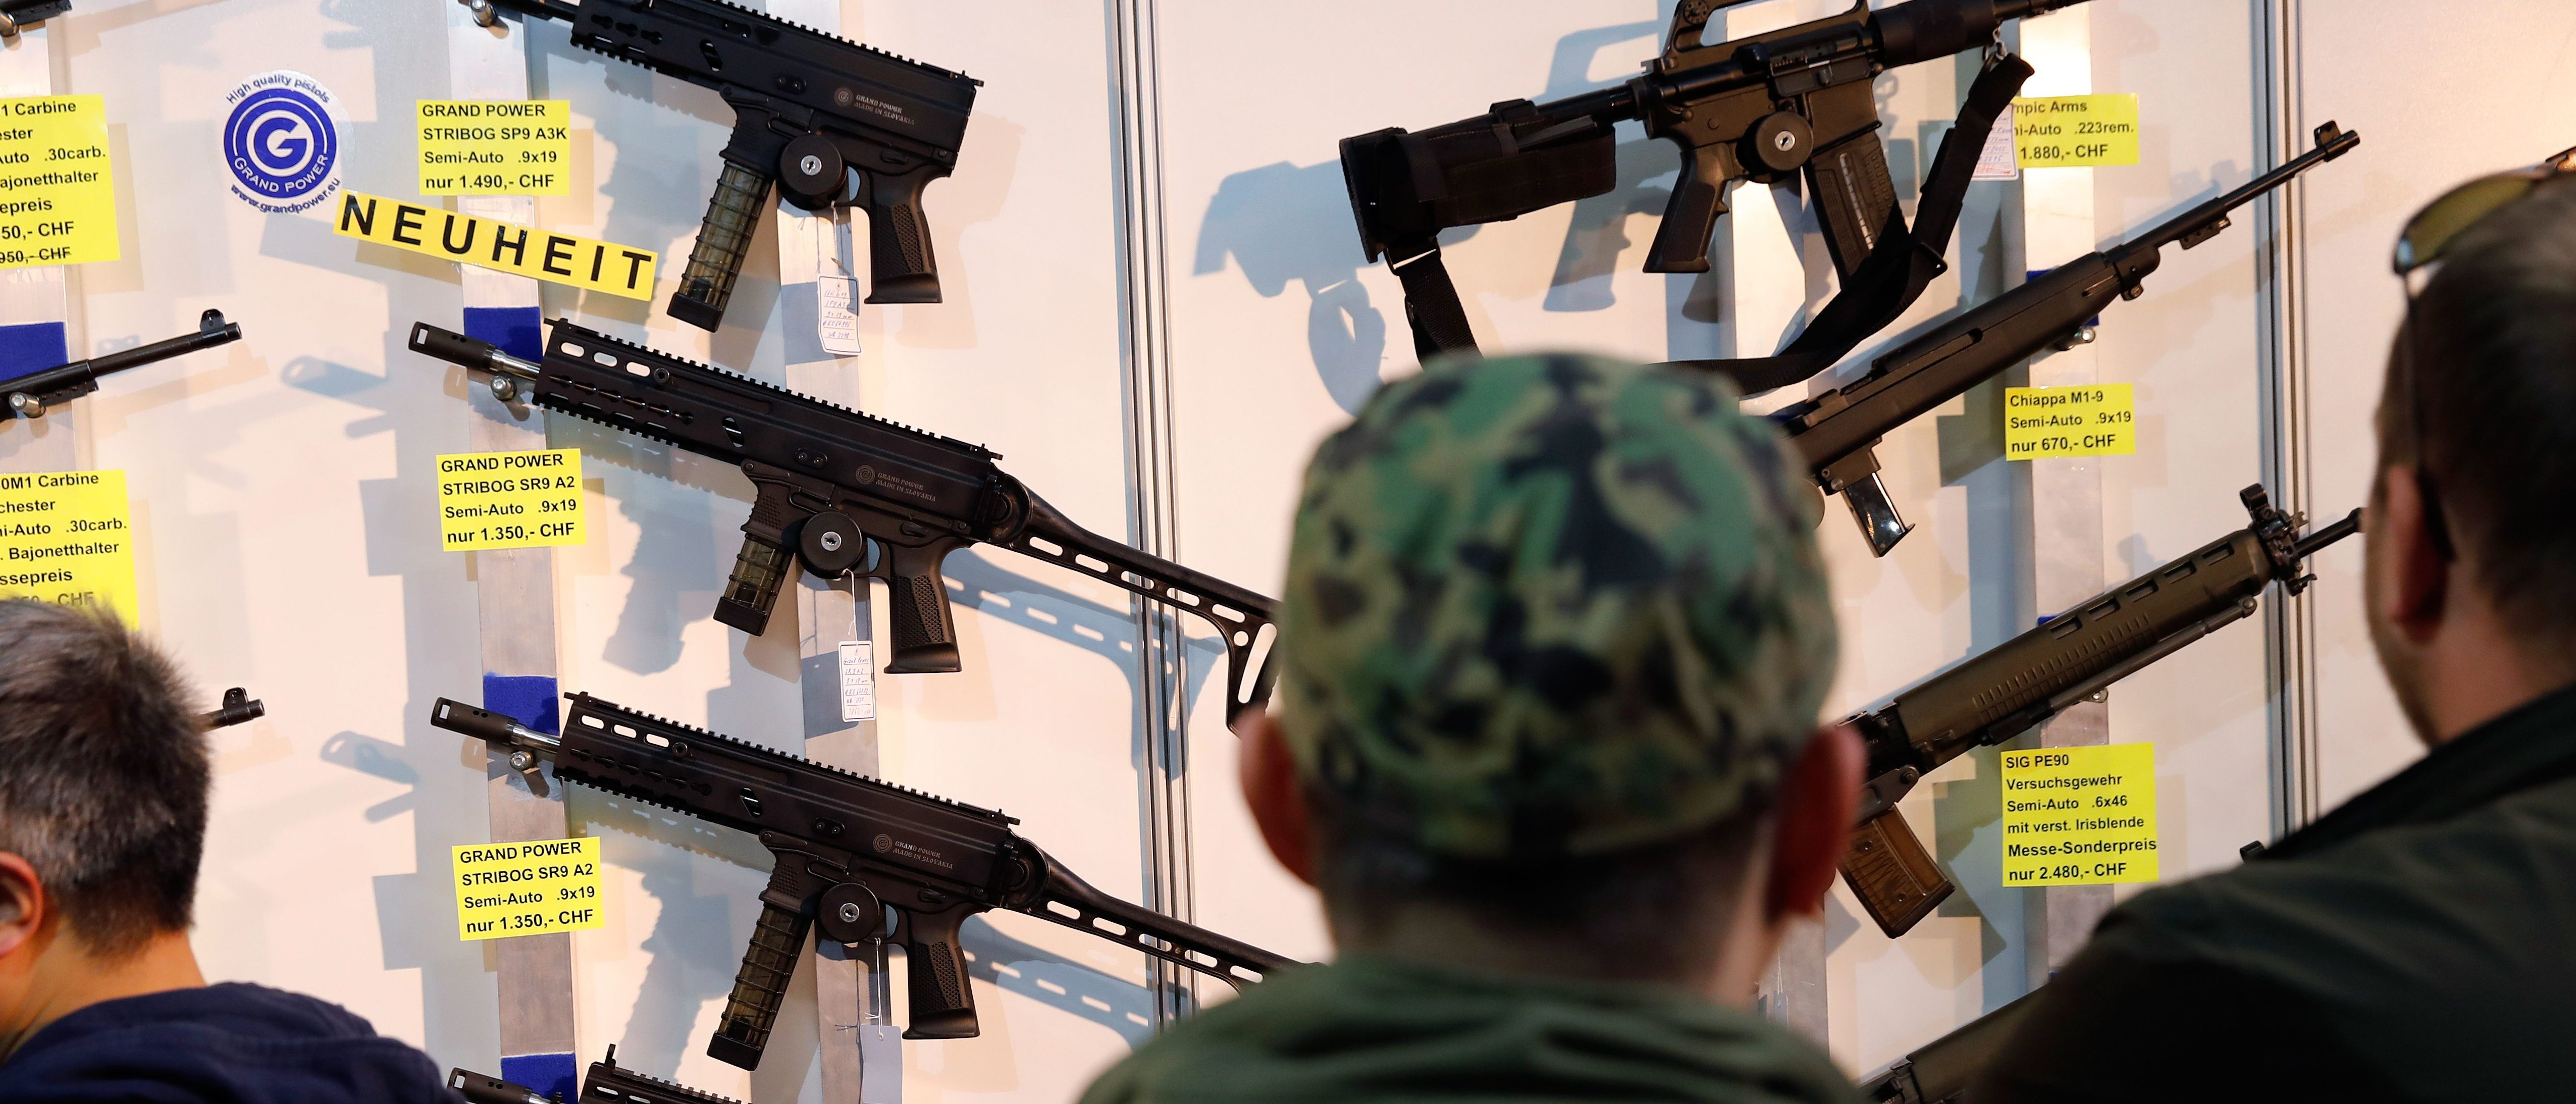 Visitors look at semi-automatic shotguns displayed on a wall during the 45th edition of the Arms Trade Fair, in Lucerne, on March 29, 2019. - Switzerland, where gun culture has deep roots, has managed to avoid the charged national debates surrounding firearm ownership that have consumed other countries. But in a country where compulsory military service means that many are comfortable around weapons, voters might, in a May 2019 referendum, push back against gun reforms demanded by the European Union. (Photo by STEFAN WERMUTH/AFP/Getty Images)